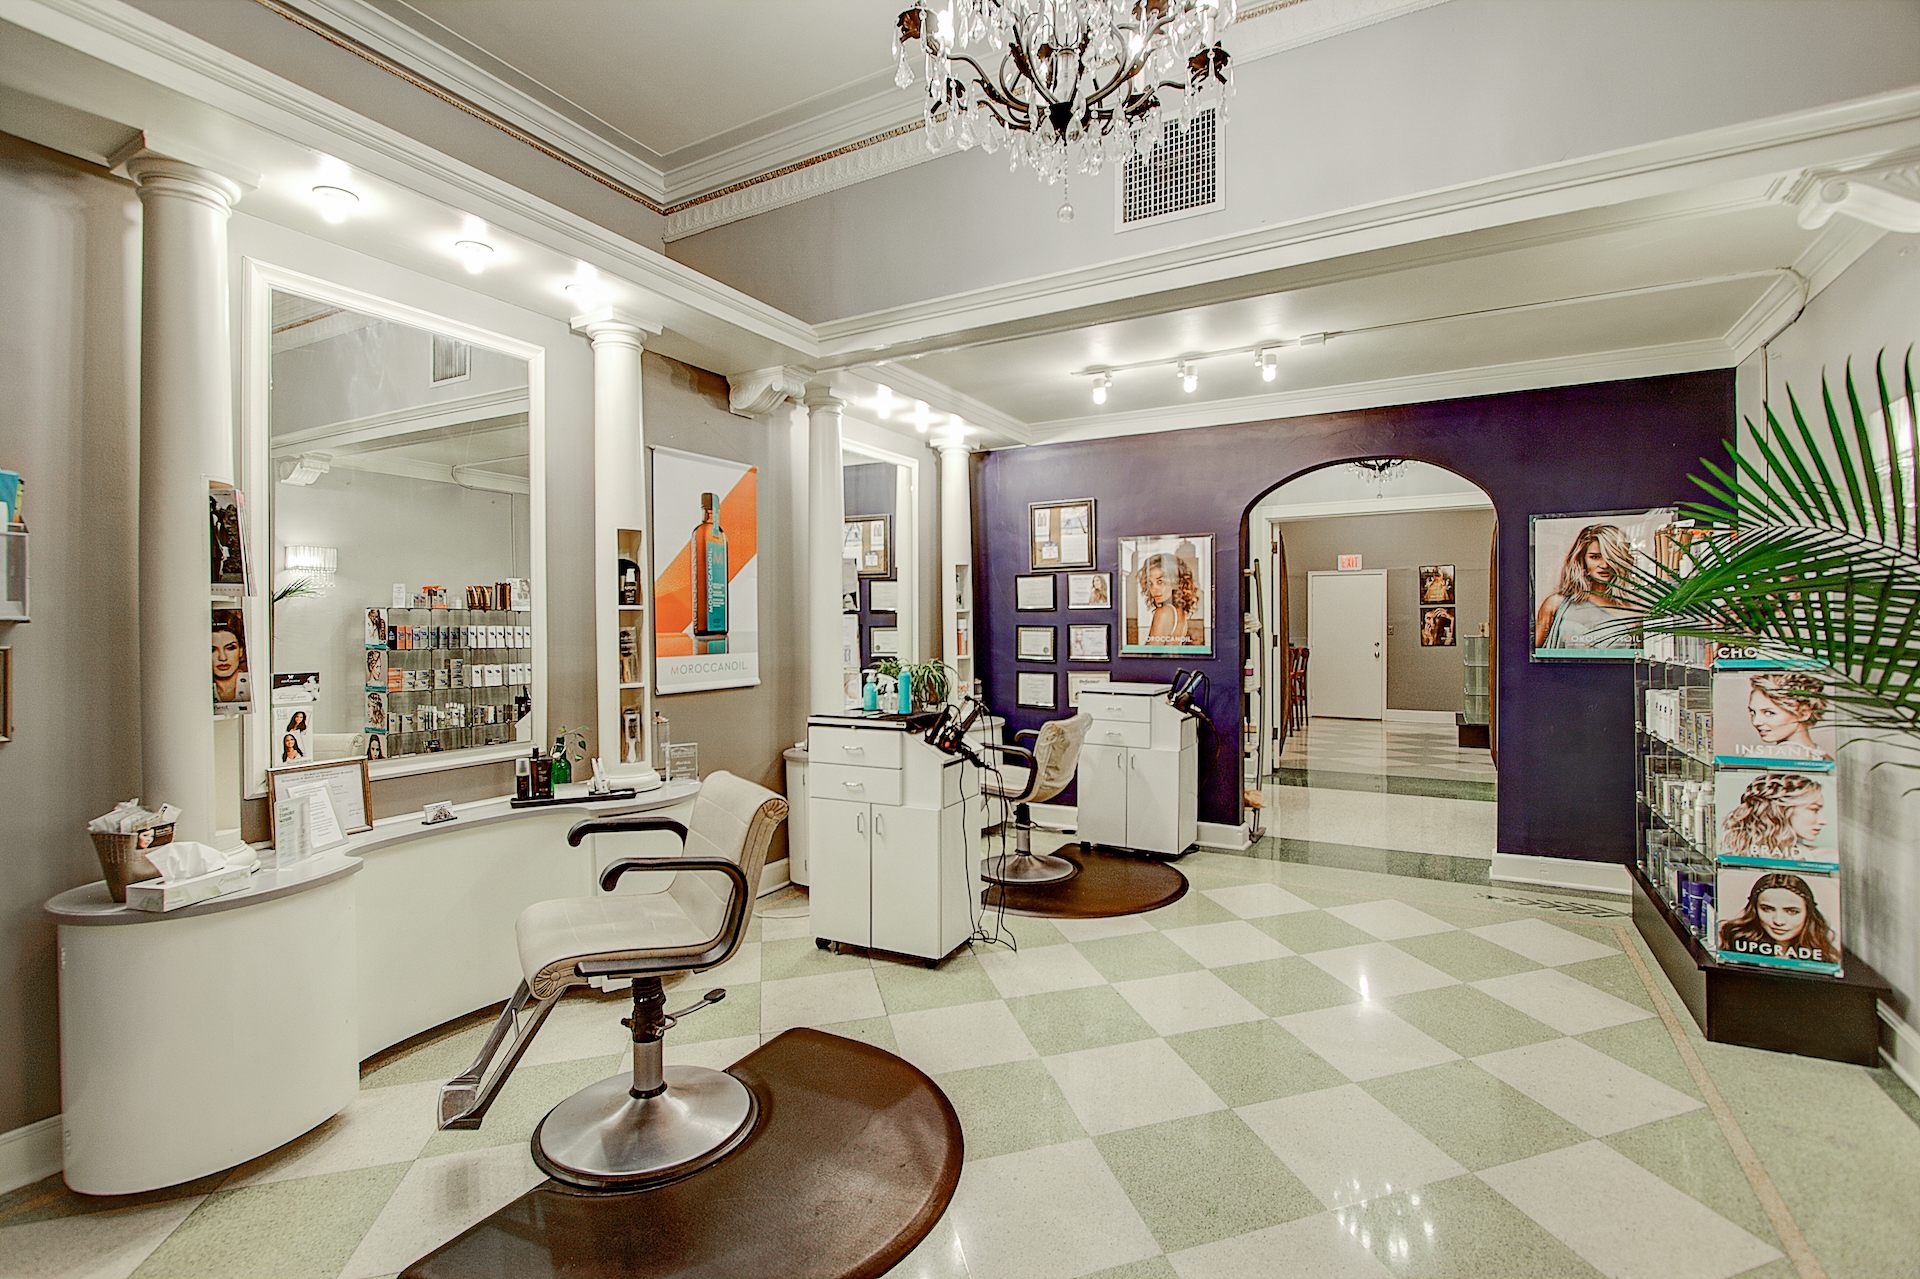 Hair Salon  Spa in Milwaukee WI  Organic  Natural Vegan  Knick Salon and Sp